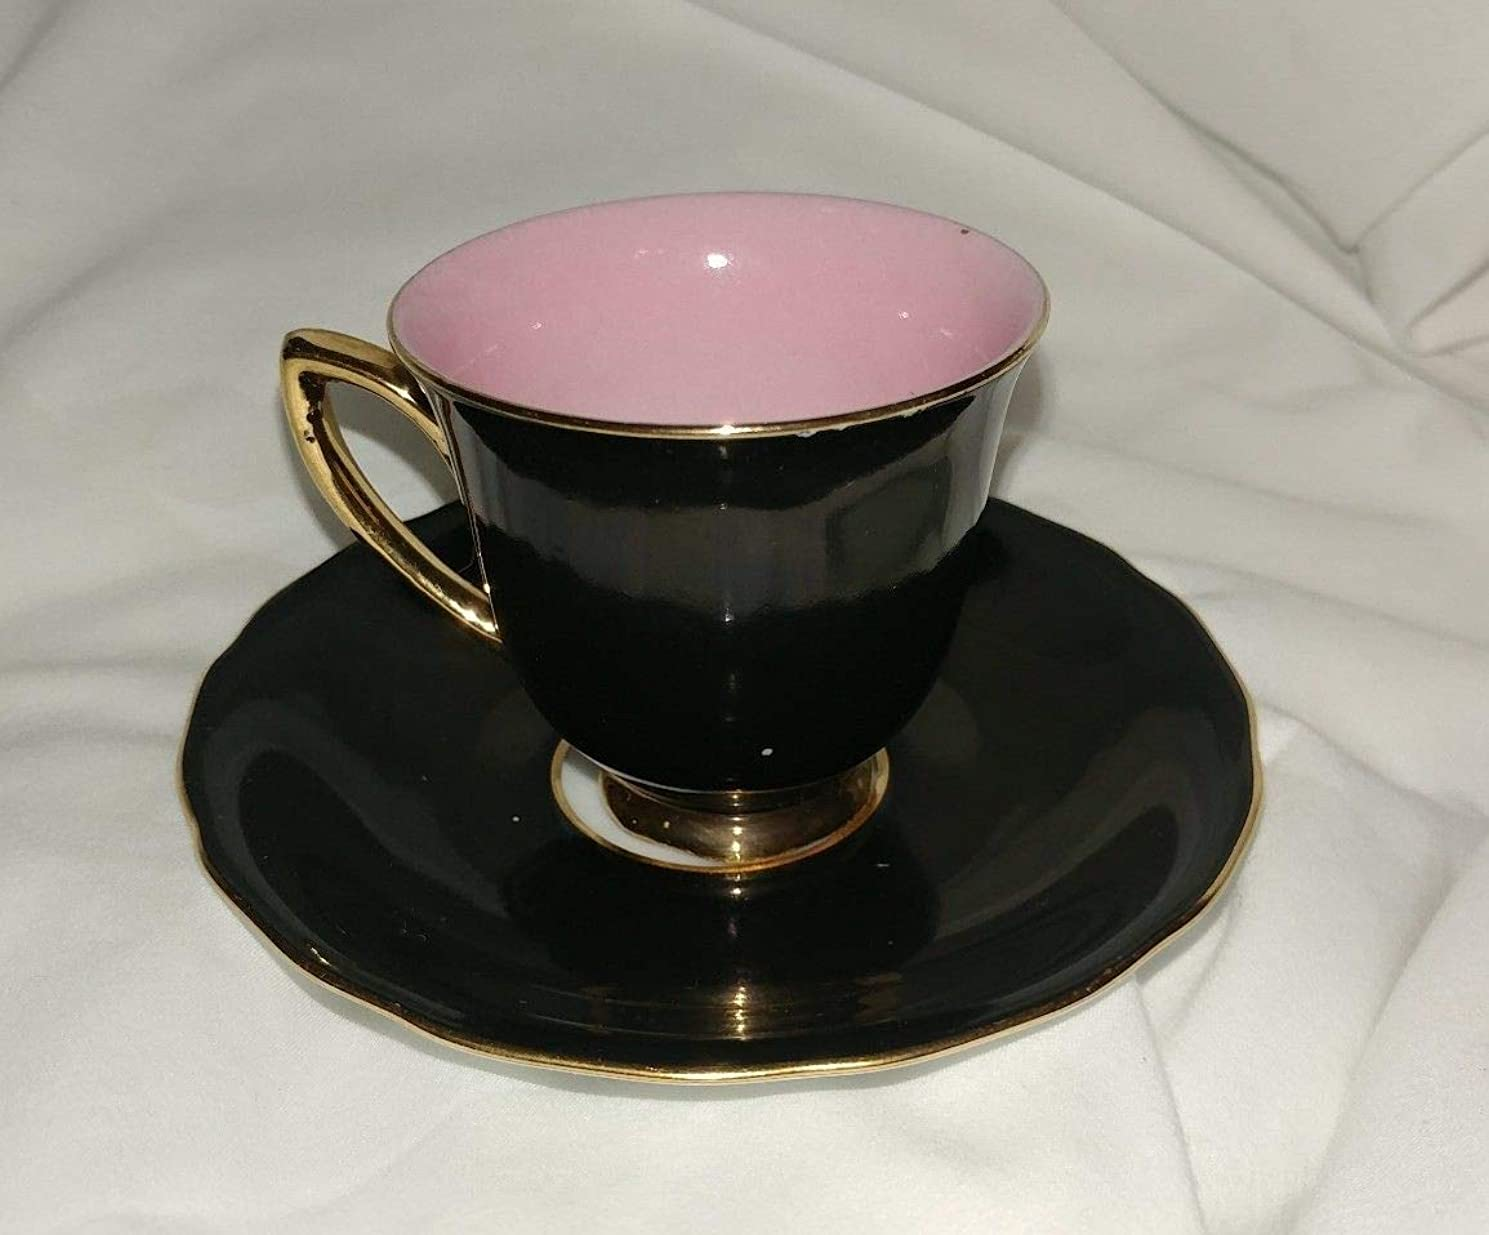 RGK Czechoslovakia Vintage Demitasse Cup & Saucer Black & Pink with Gold Trim